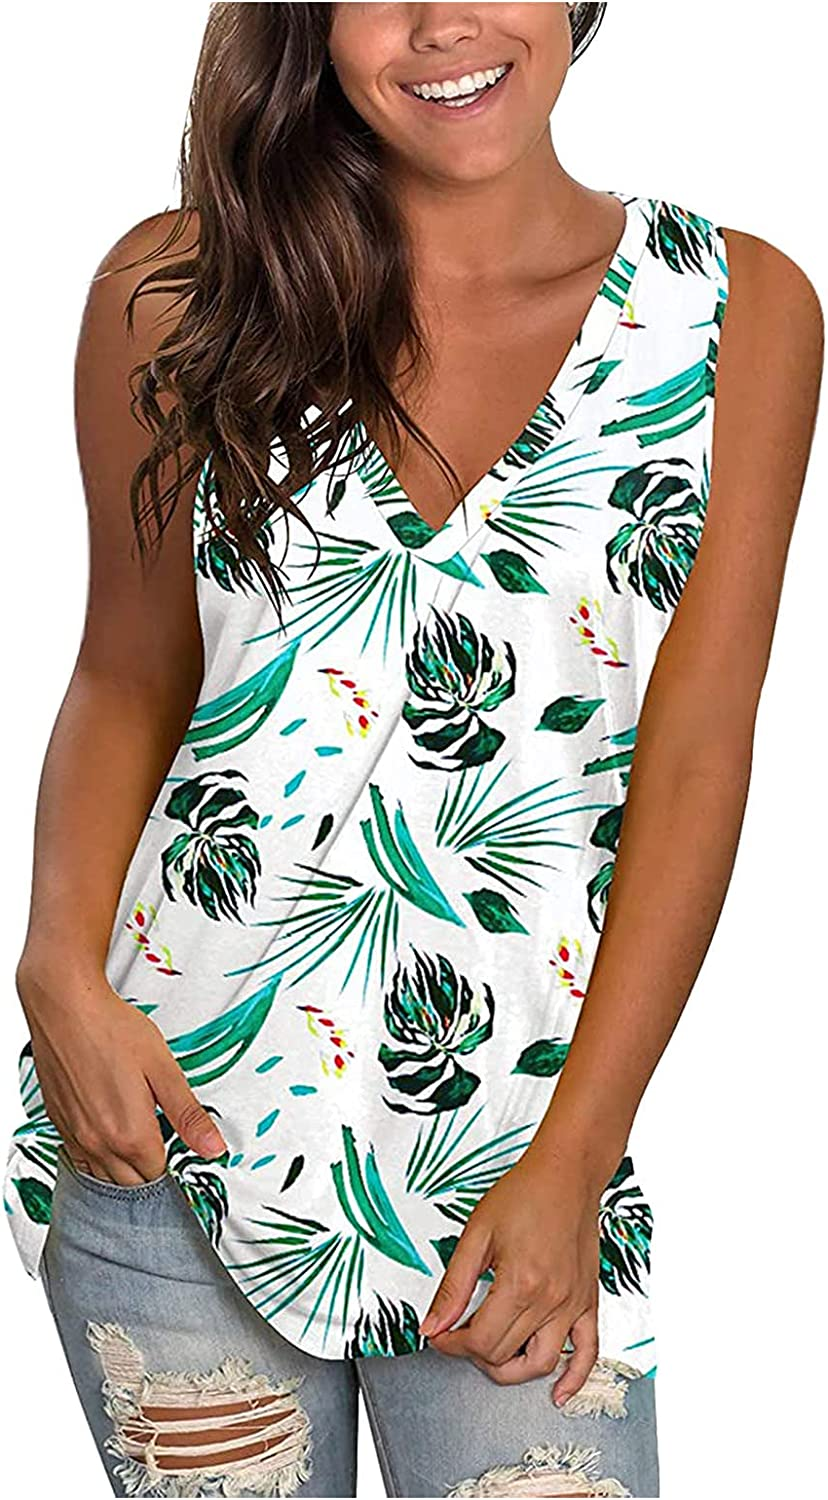 Summer Tops for Women,Women Trendy V-Neck Sleeveless Floral Printed T-Shirts Casual Loose Tunic Tees